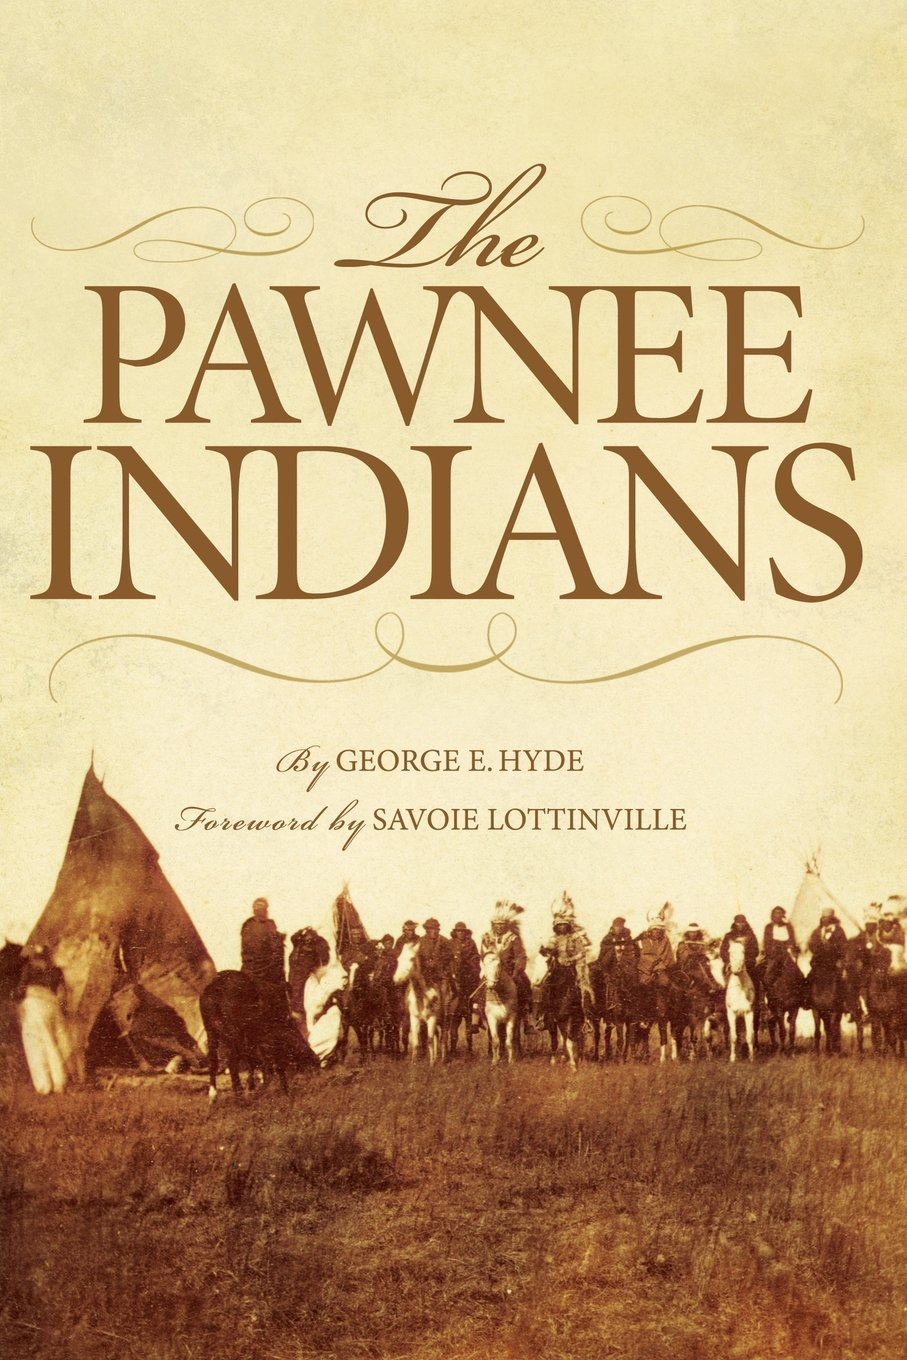 The Pawnee Indians (The Civilization of the American Indian Series): George  E. Hyde, Savoie Lottinville: 9780806120942: Amazon.com: Books